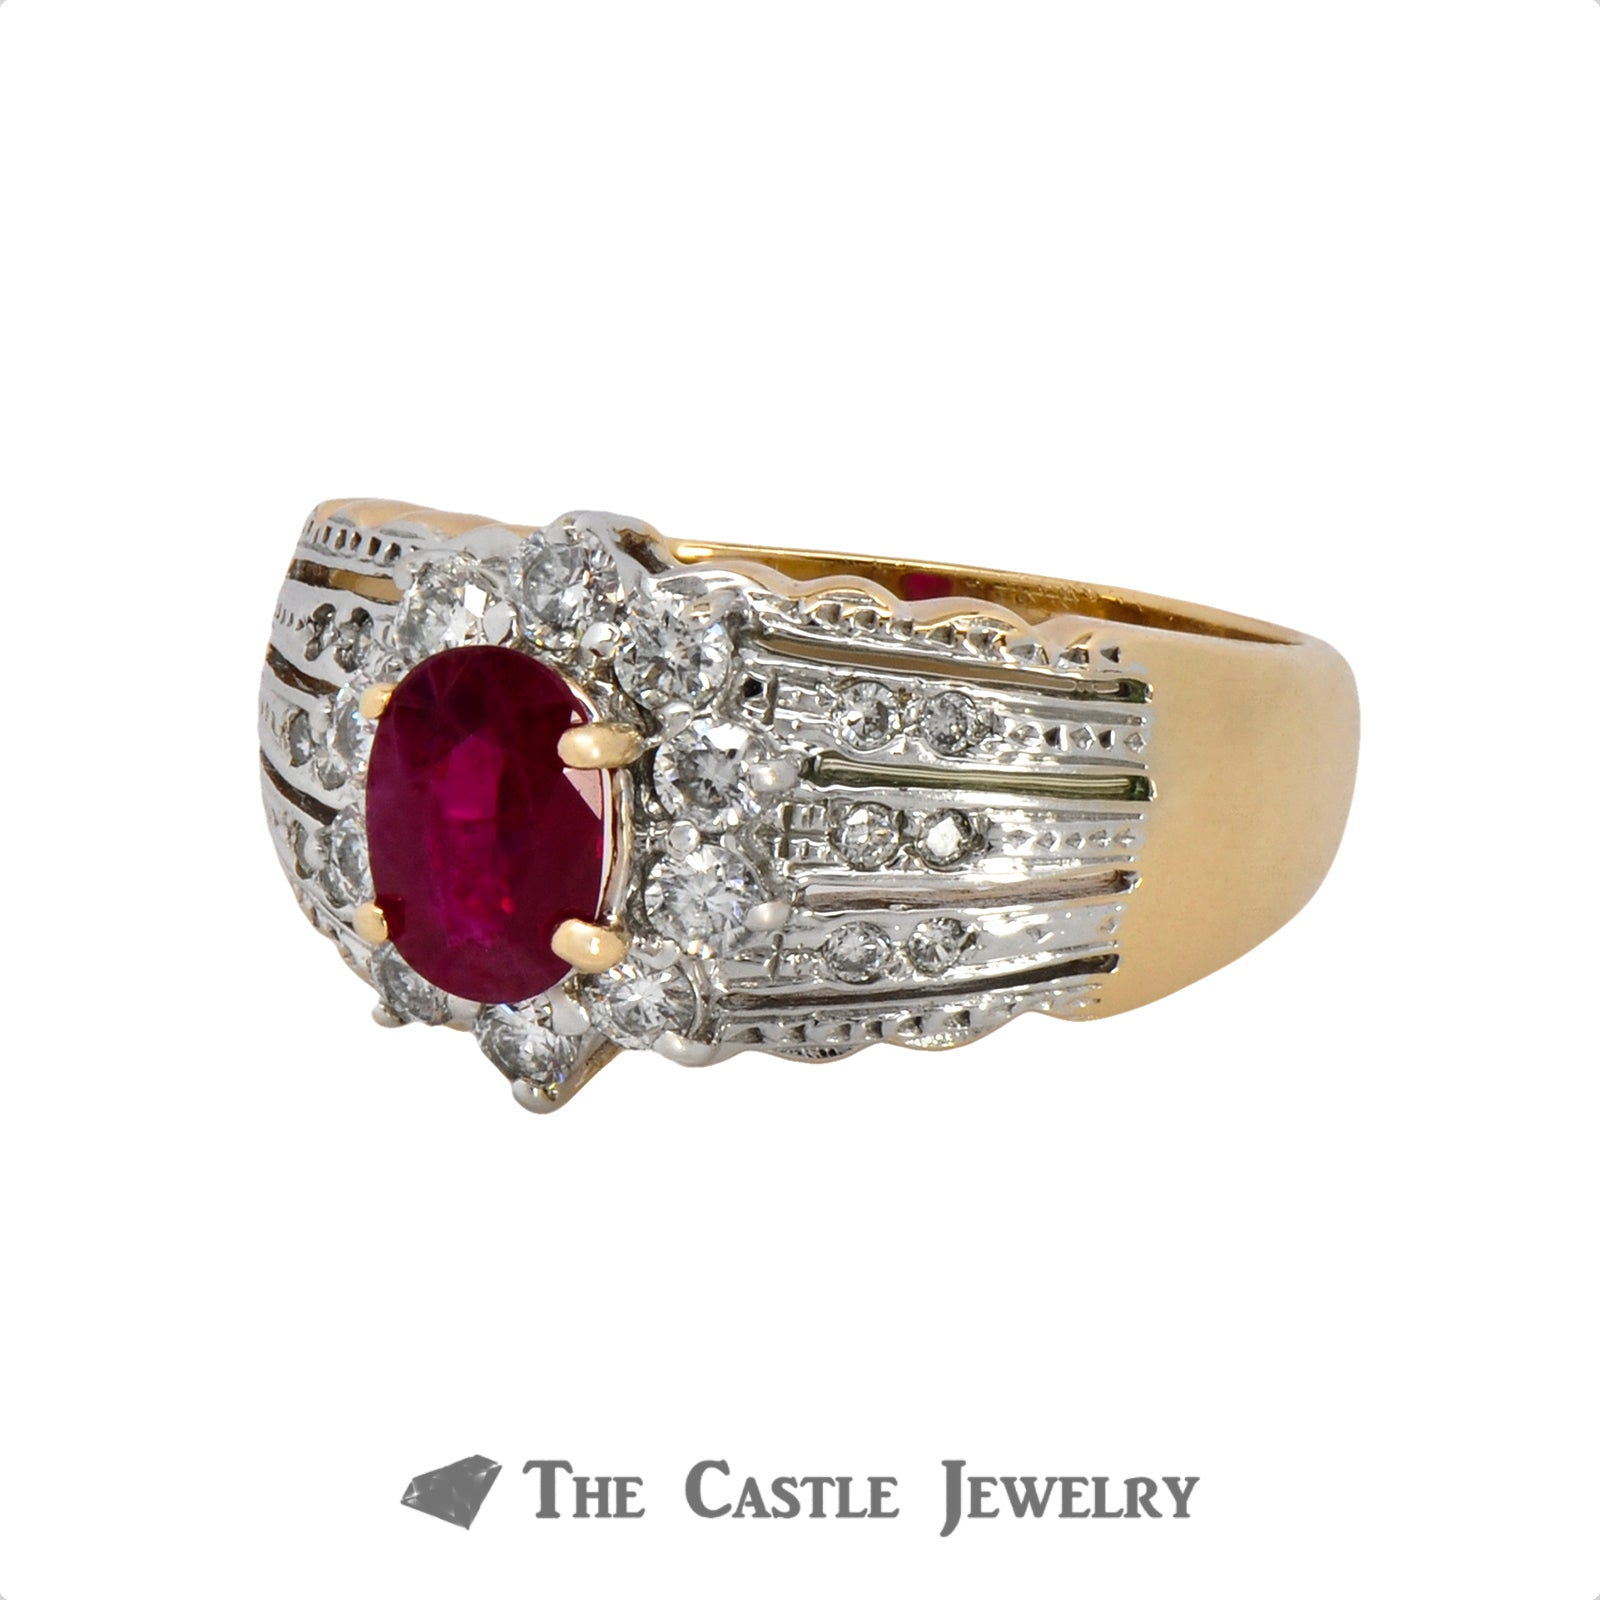 Le Vian Oval Ruby Ring with .50cttw Diamond Halo & Accents in 14k Yellow Gold-3